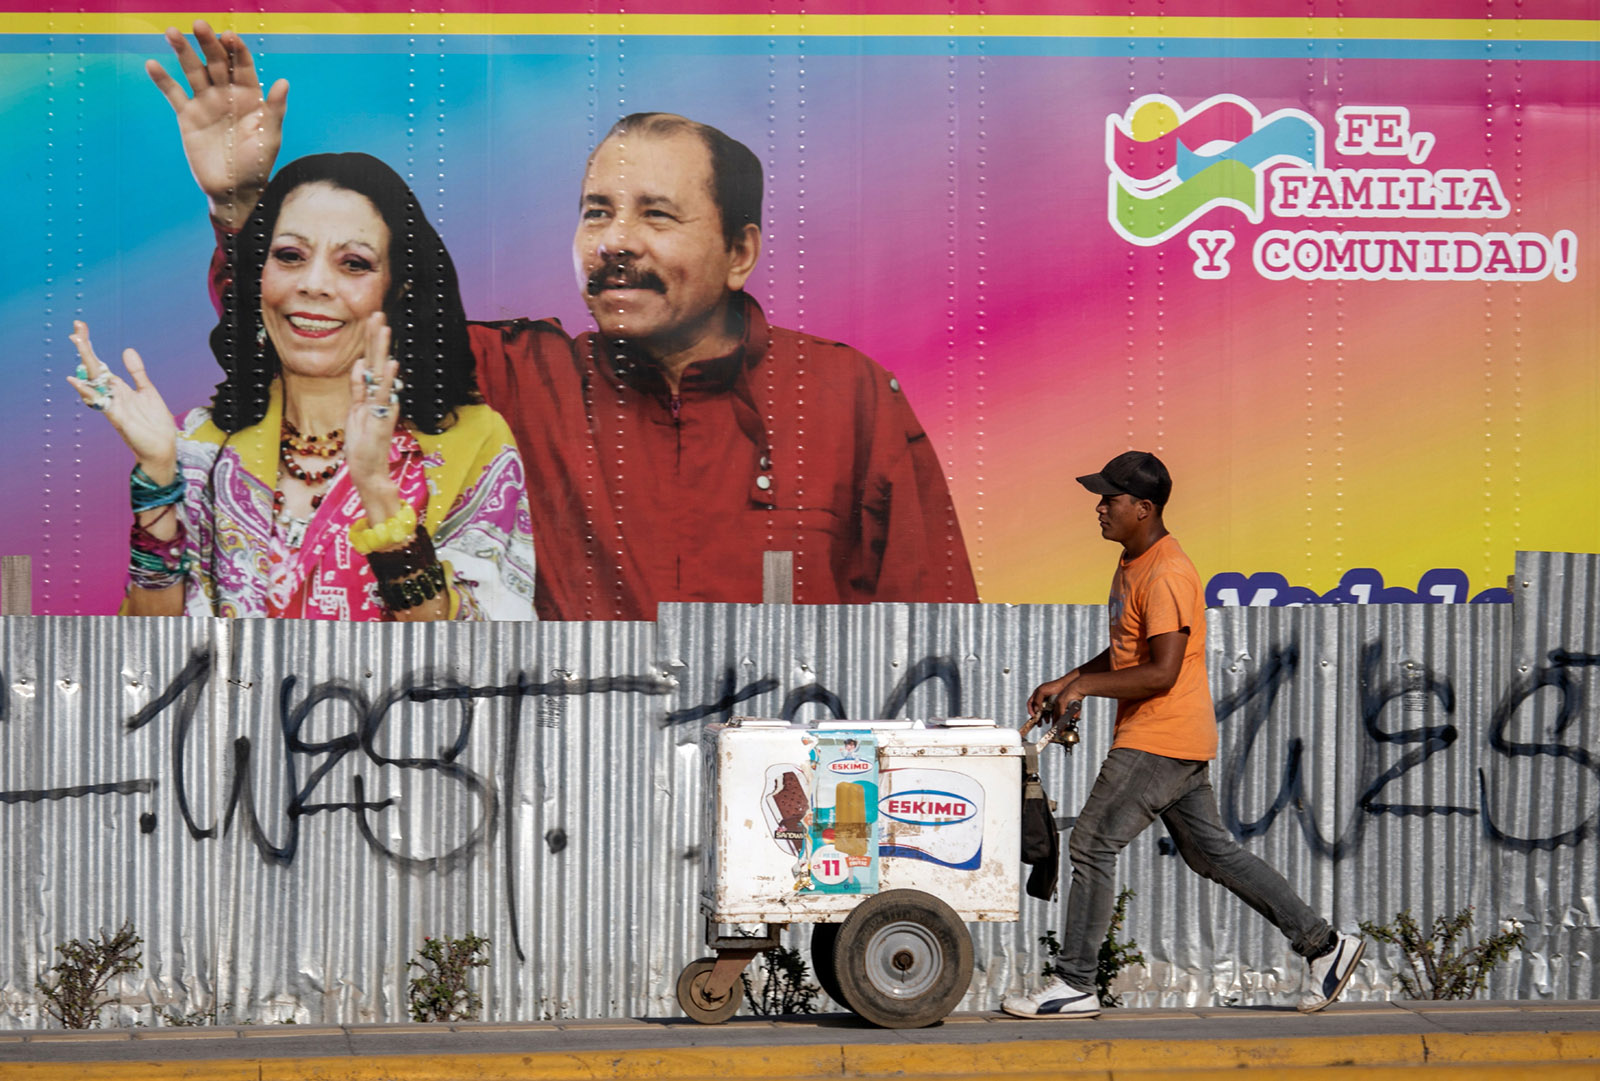 Nicaraguan president Daniel Ortega and his wife, vice-president Rosario Murillo, pictured on the side of a mobile health clinic